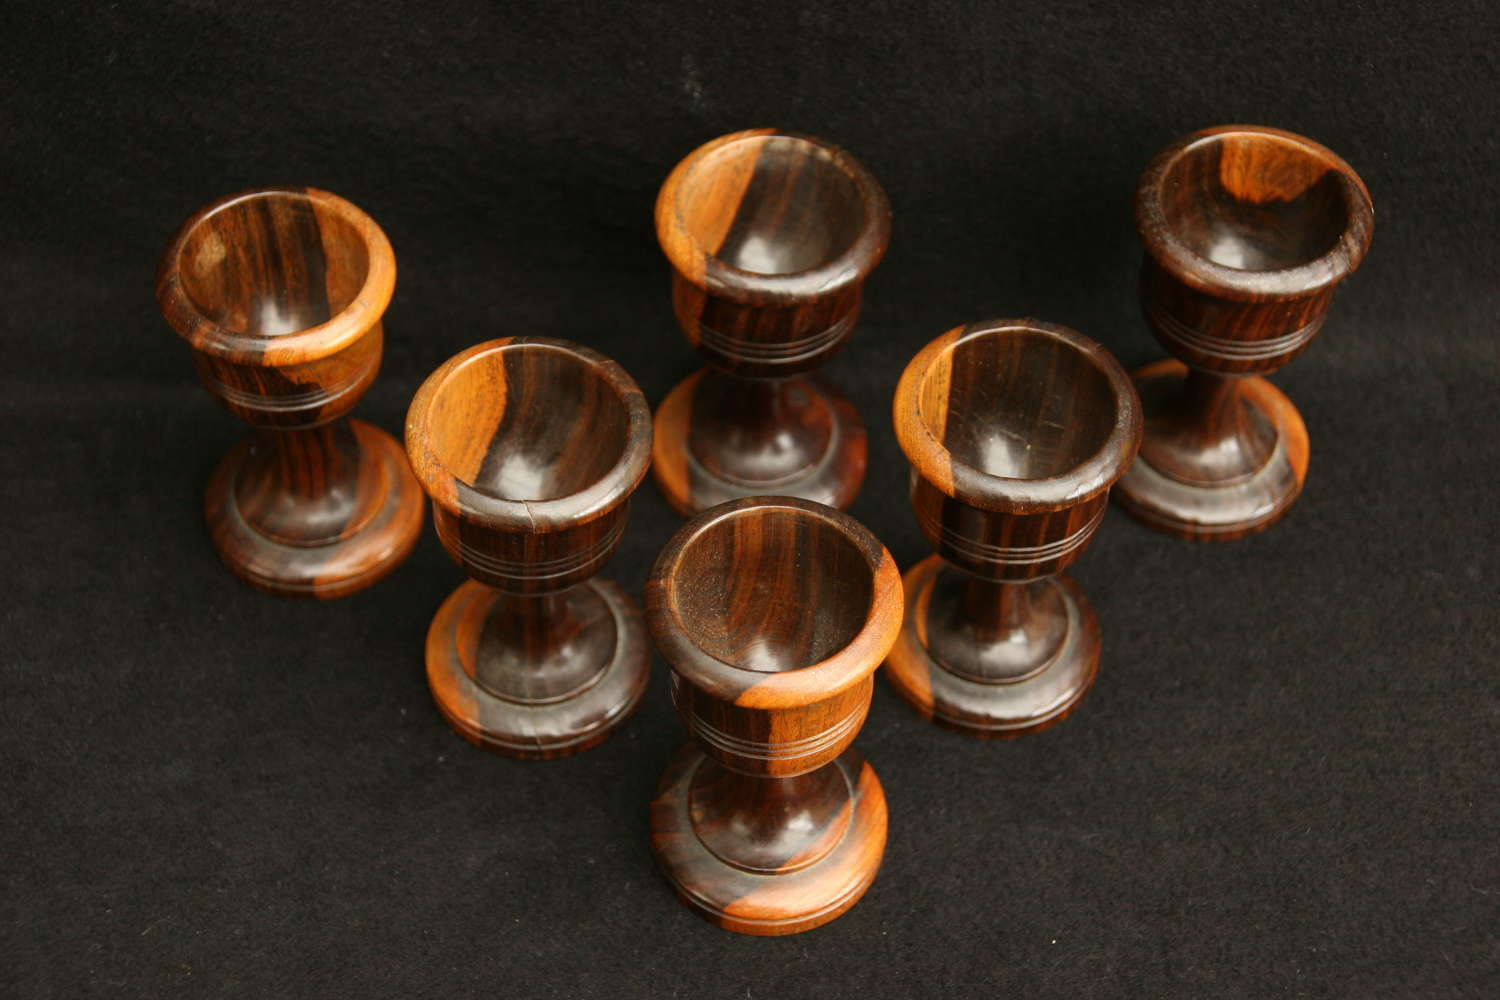 Set of 6 Treen Egg cups, Late 19th century